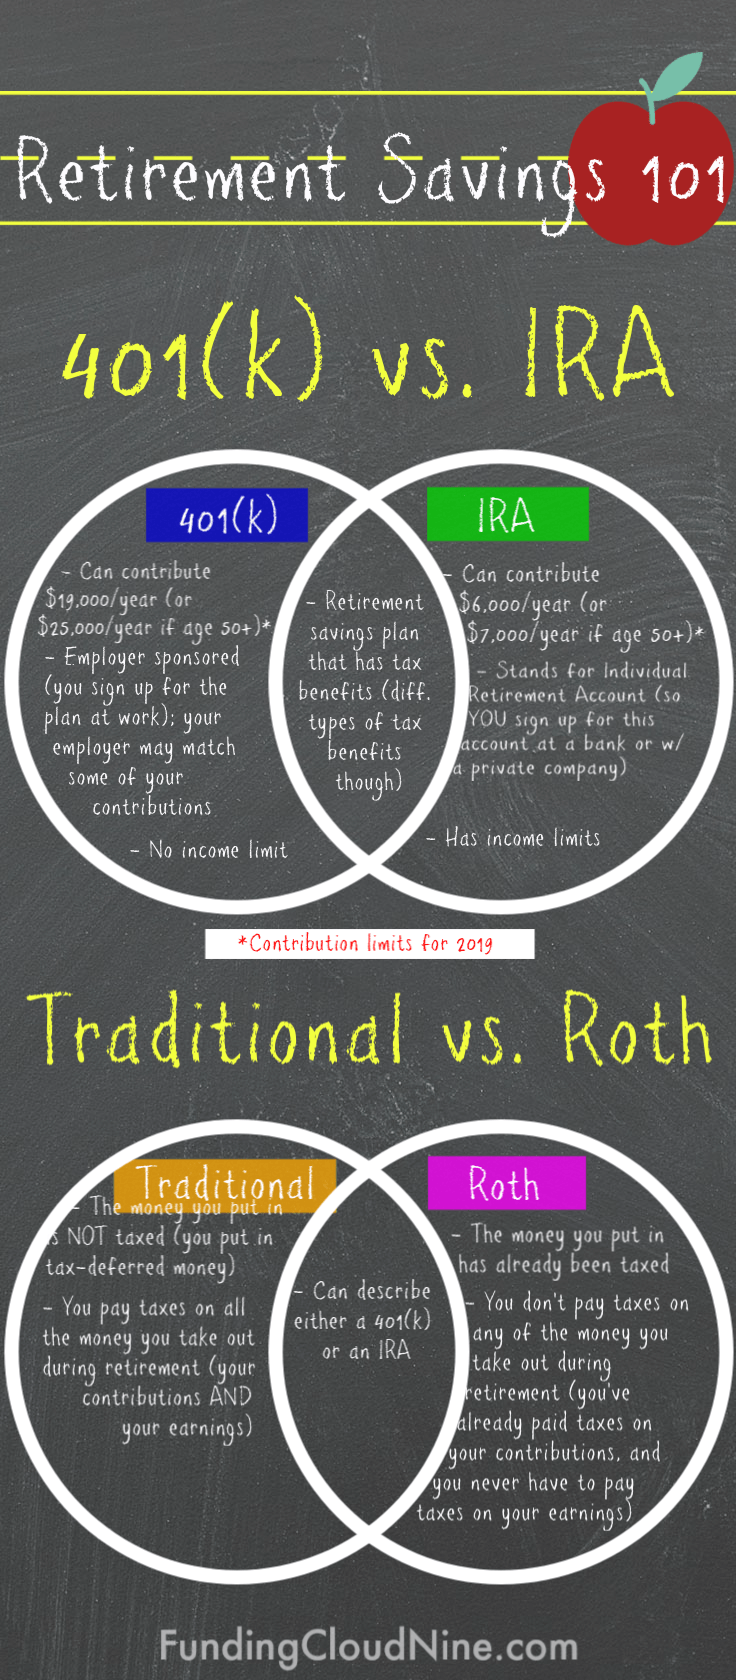 401k vs IRA & Traditional vs Roth: The Basics | FundingCloudNine.com. Check out this simple explanation and comparison of retirement savings plans. 401k vs IRA. Traditional vs Roth.